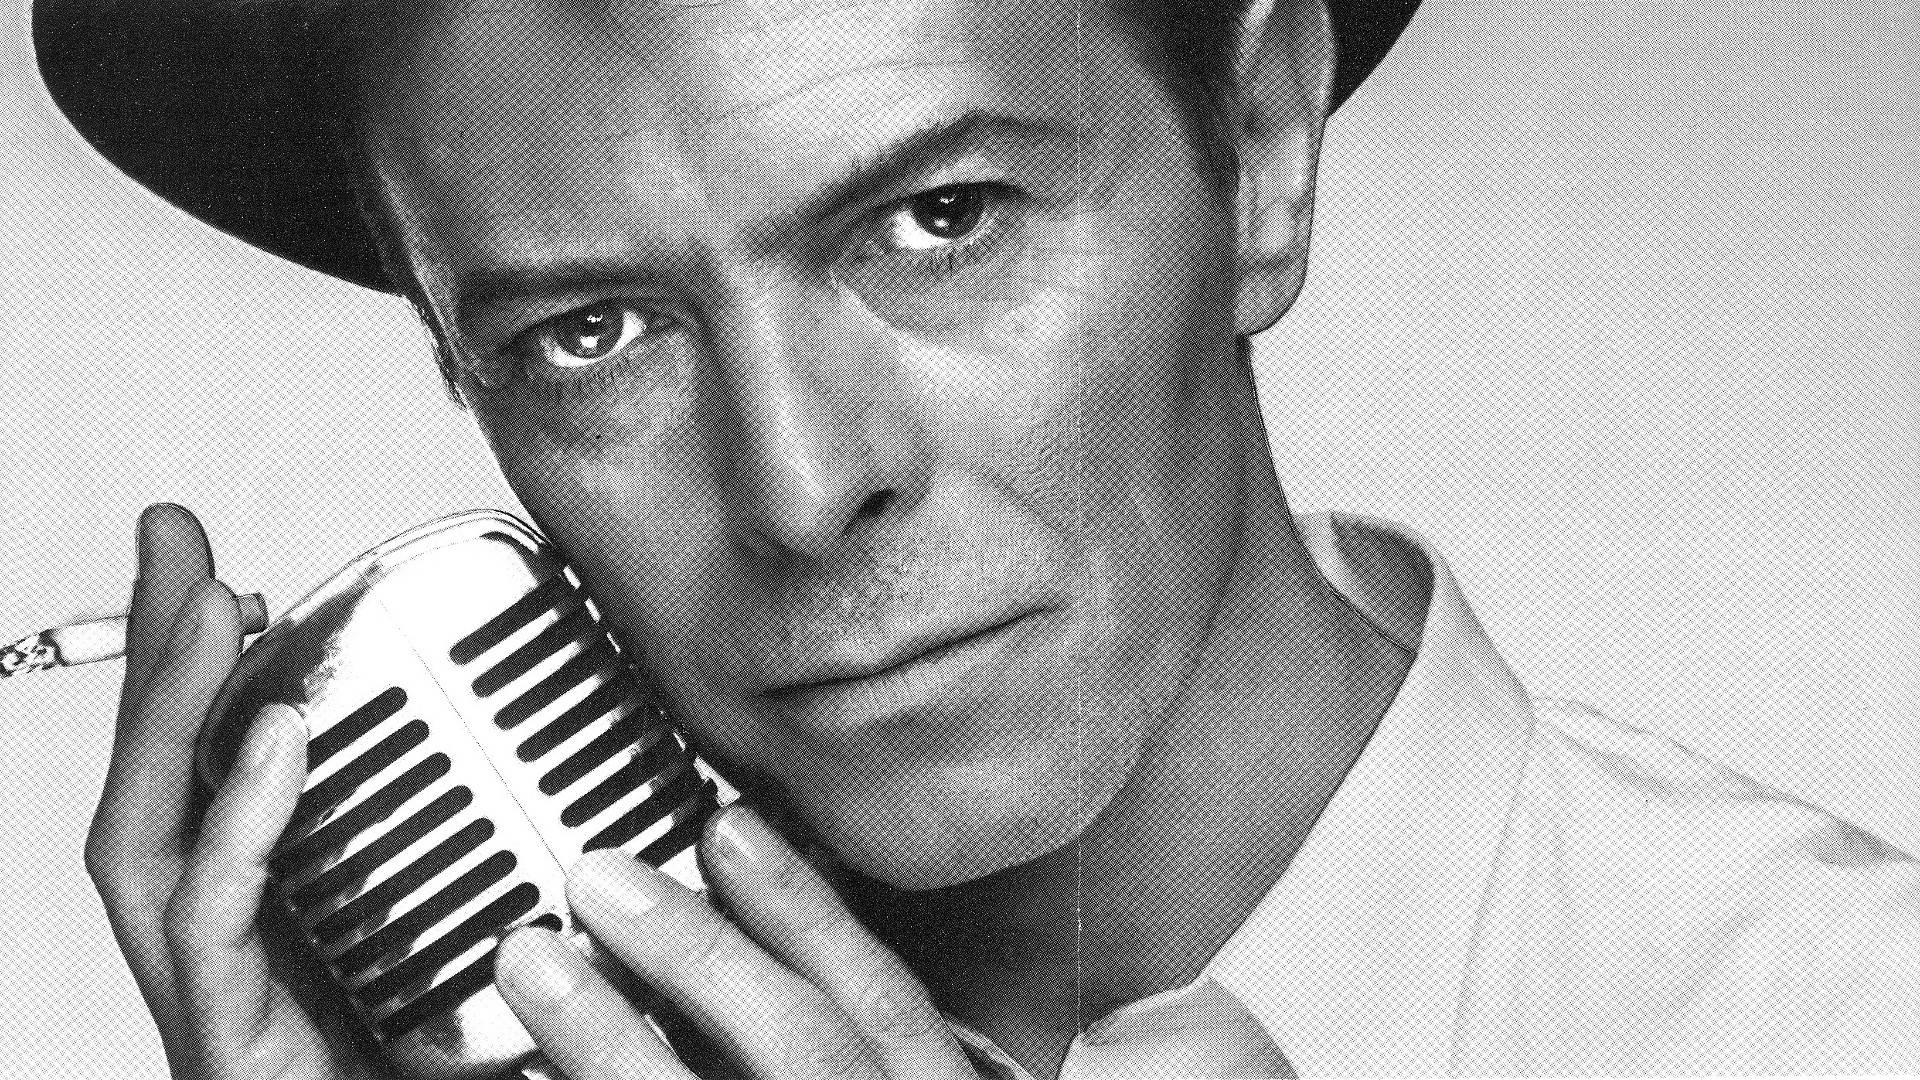 Download David Bowie Wallpapers 1920x1080